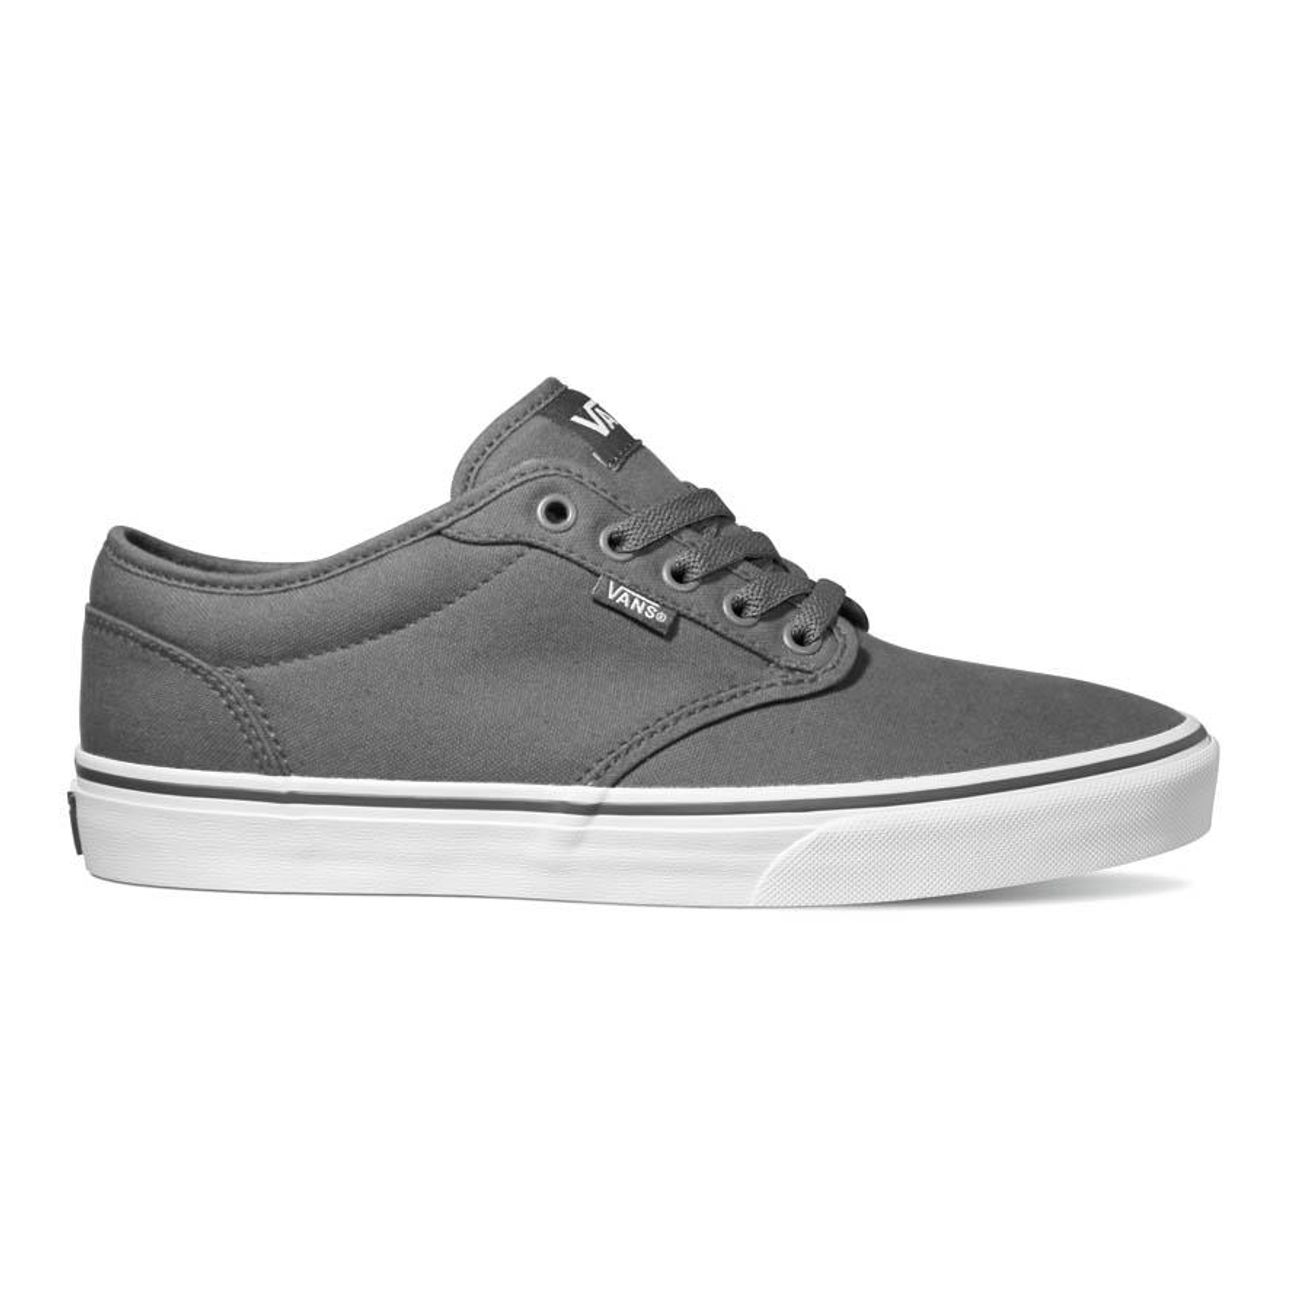 Atwood ModeLifestyle Homme ModeLifestyle Homme Vans Vans Atwood OkZXPiu